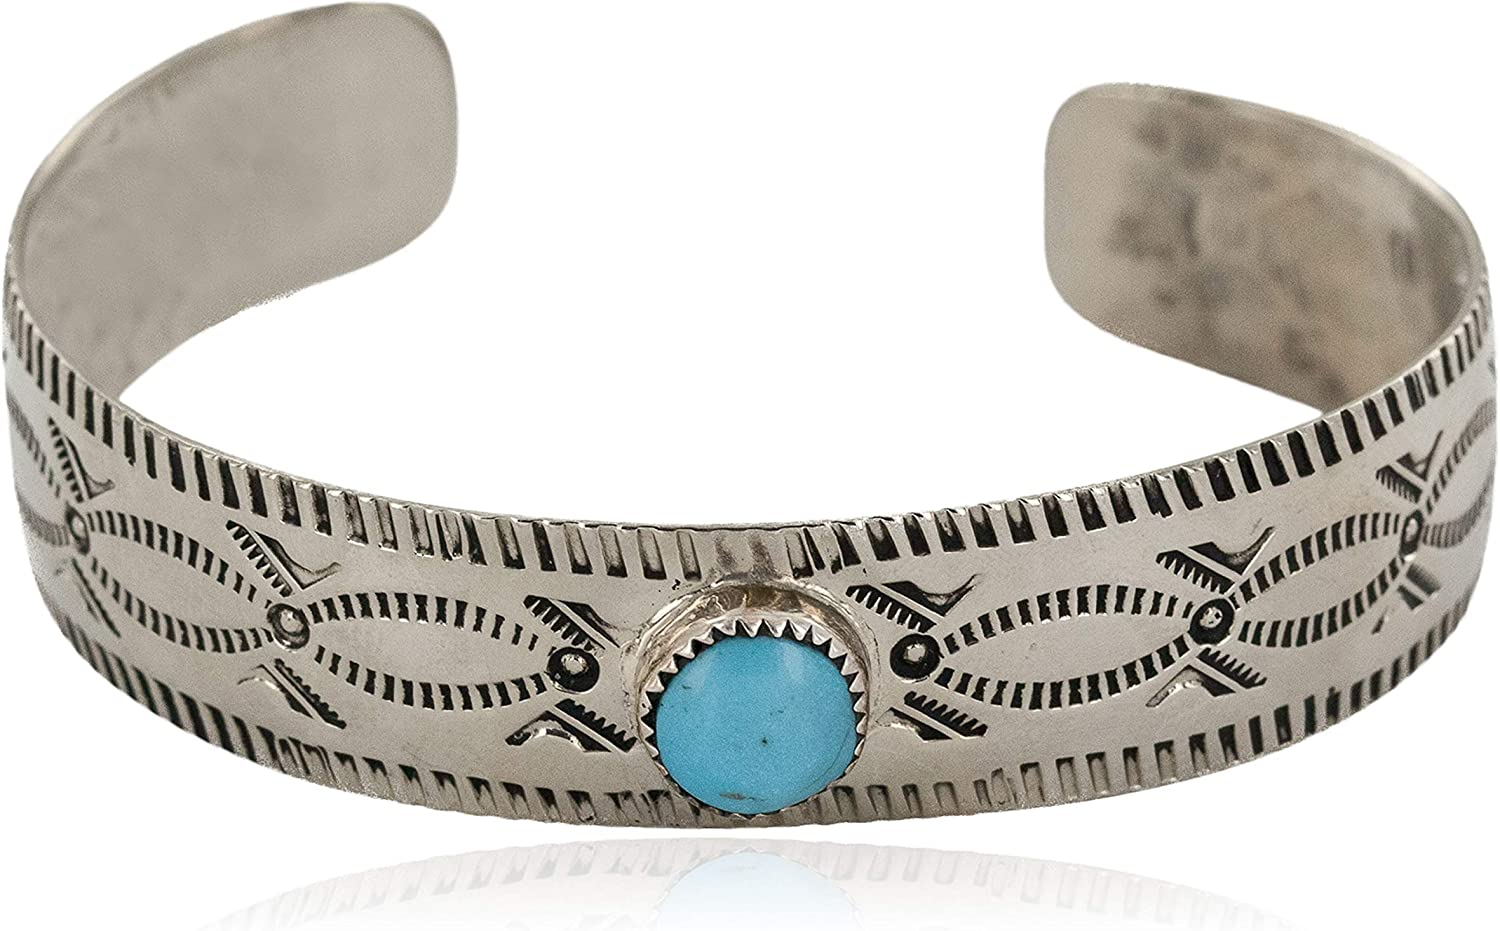 $180Tag Certified Nickel Navajo Natural Turquoise Native Cuff Bracelet 12796-81 Made by Loma Siiva